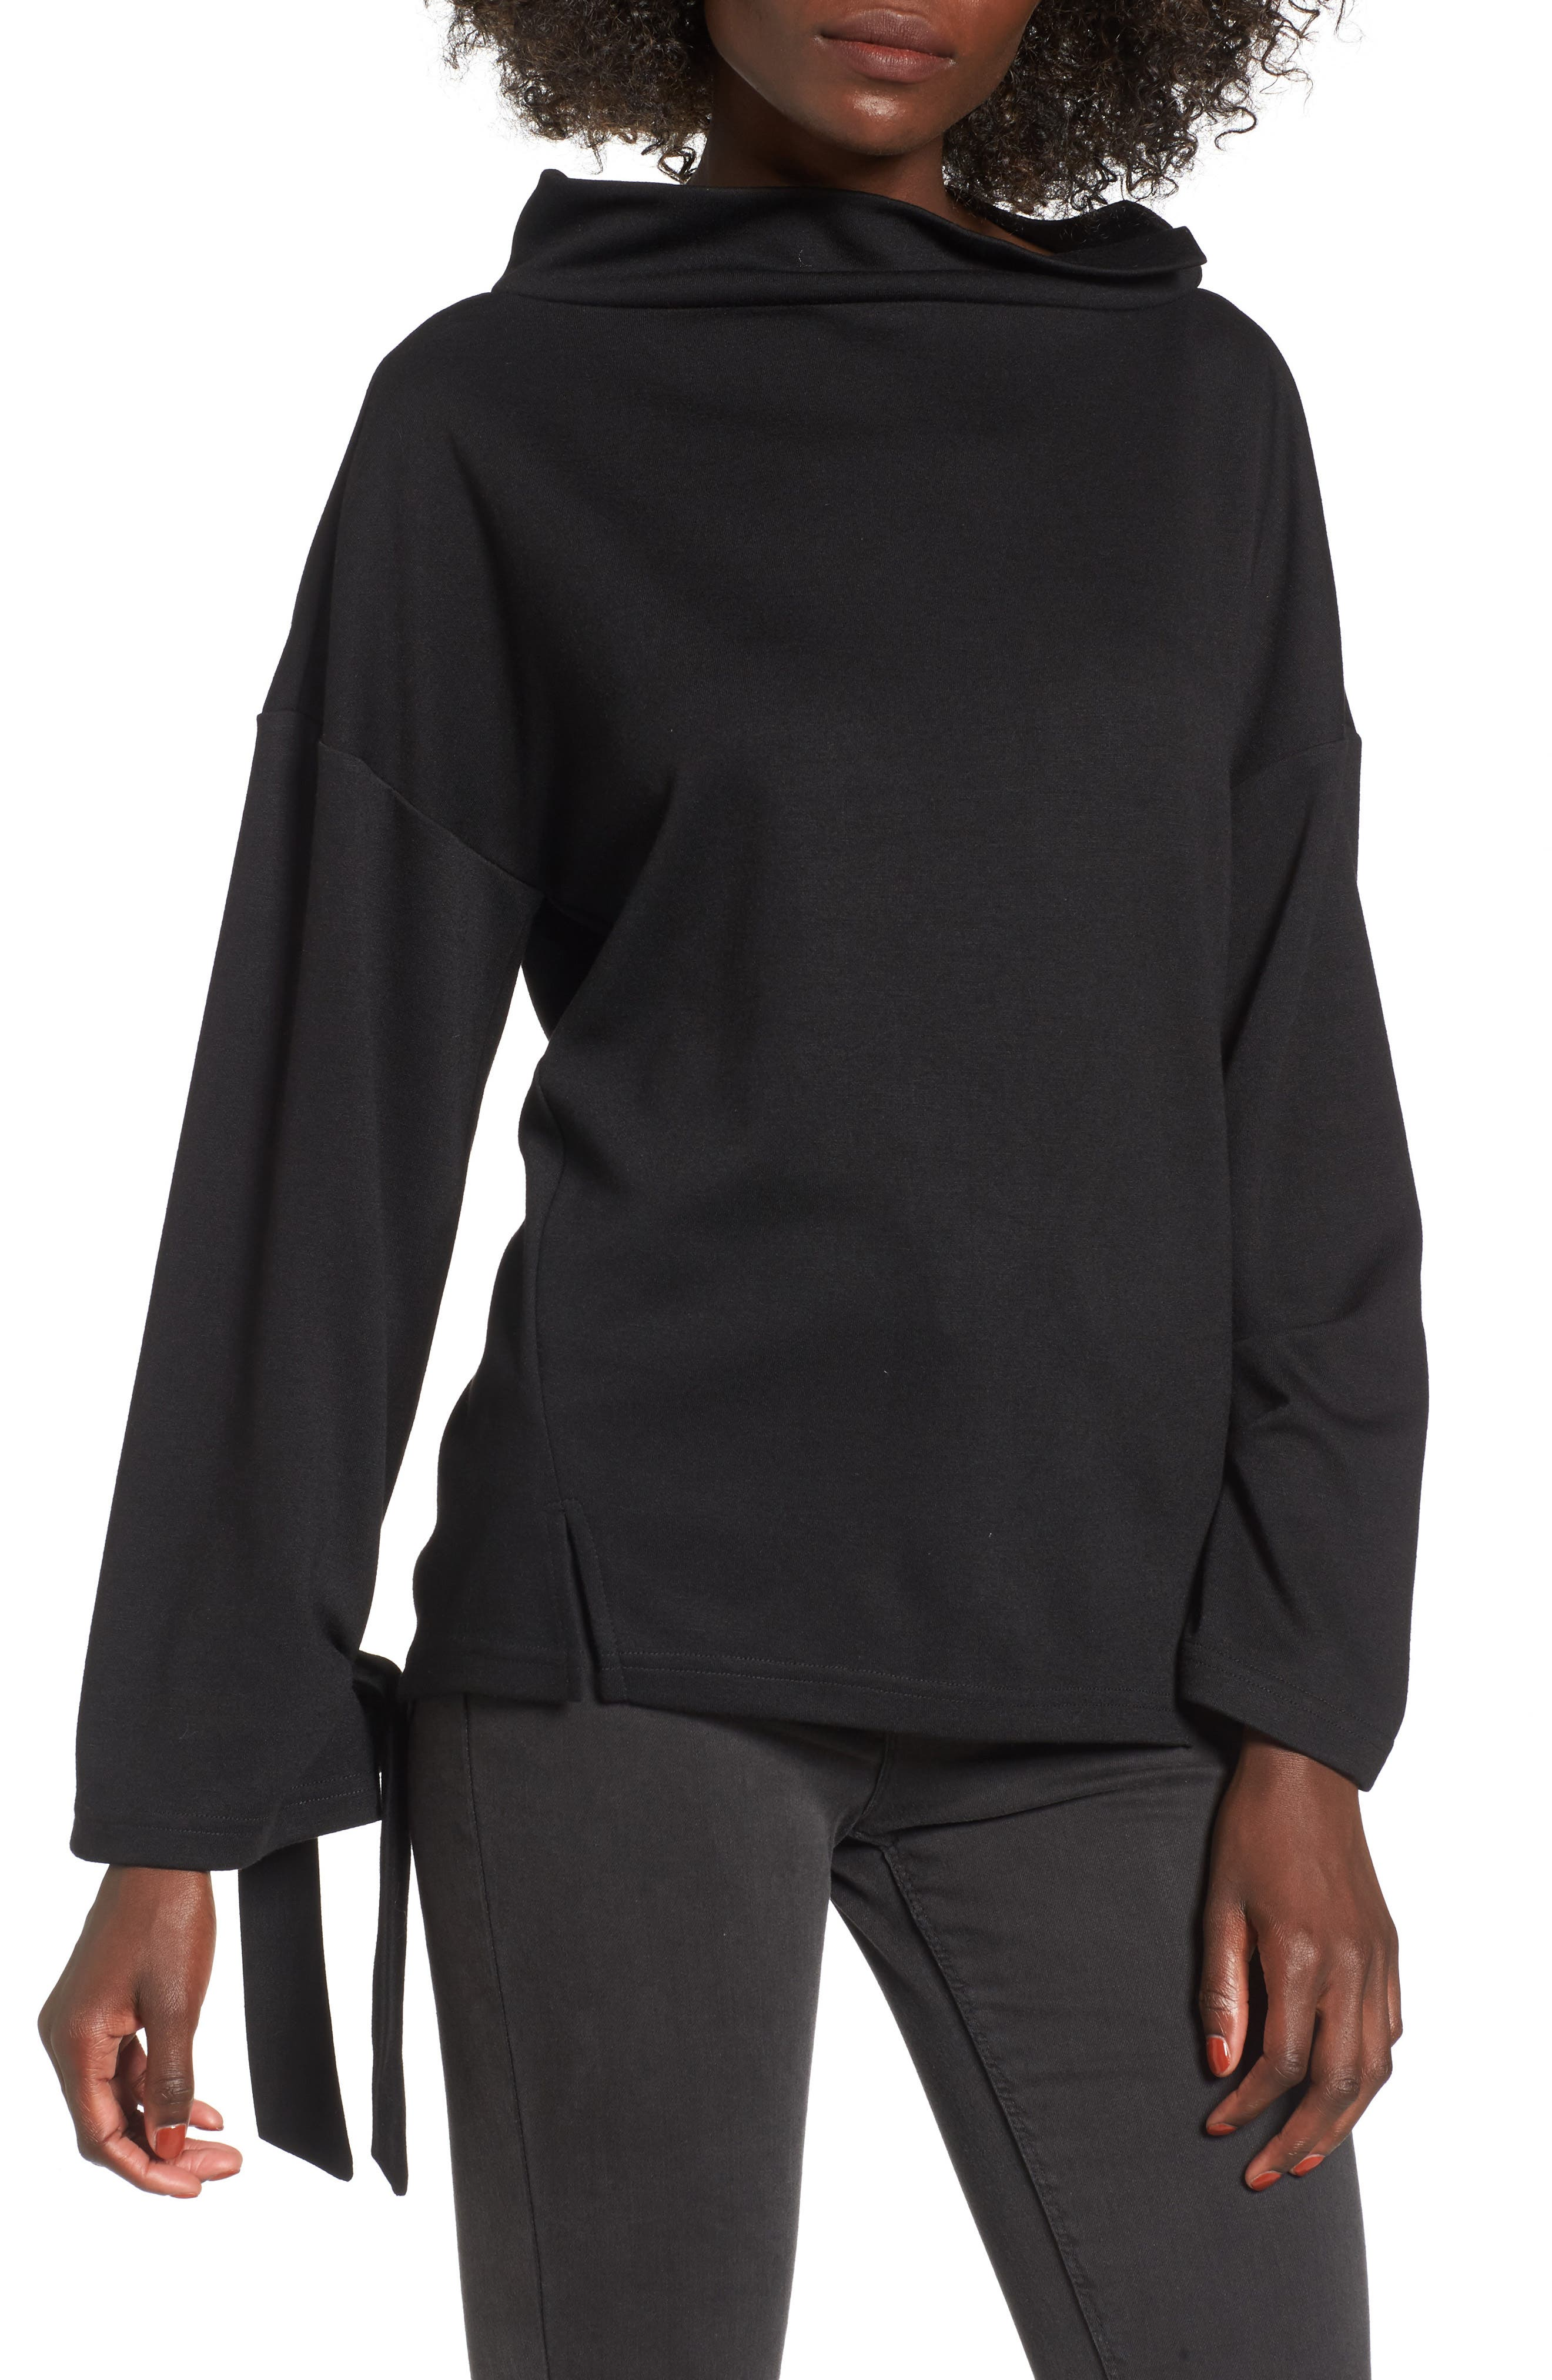 Alternate Image 1 Selected - J.O.A. Tie Sleeve Sweater